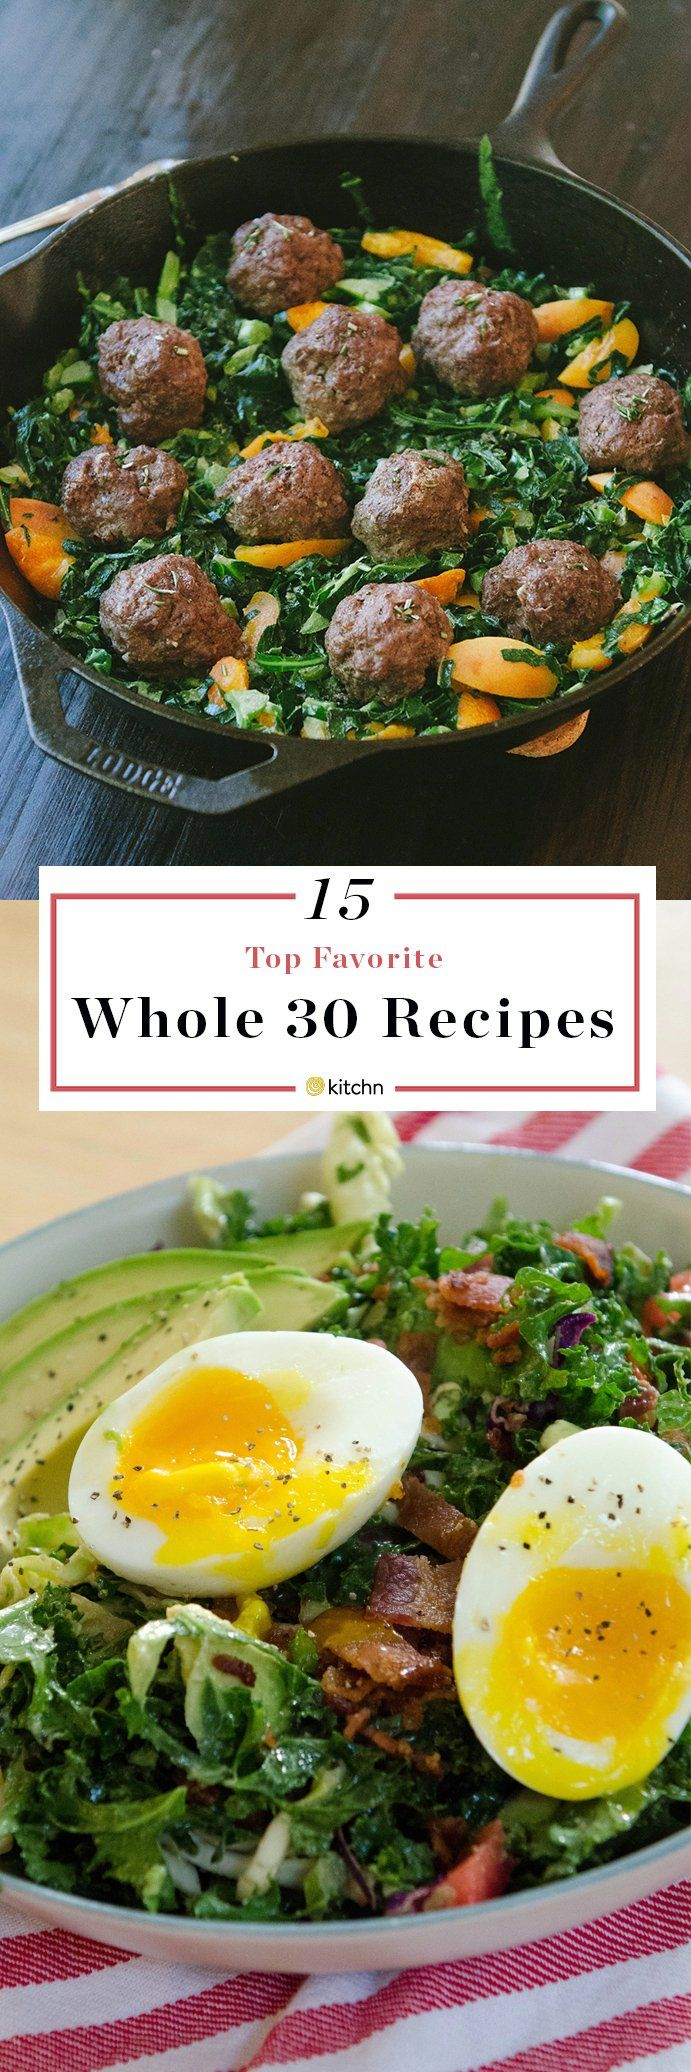 A Dinner Meal Plan for an EASY Week of the Whole30 or Paleo Diet. Whether it's your first week of Whole 30 or you've been following the diet for a long time, these ideas and recipes for weeknight dinners and meals will make you hungry! Start out the new year in a healthy way with these beef, chicken and fish recipes; this is a great way to lose weight!